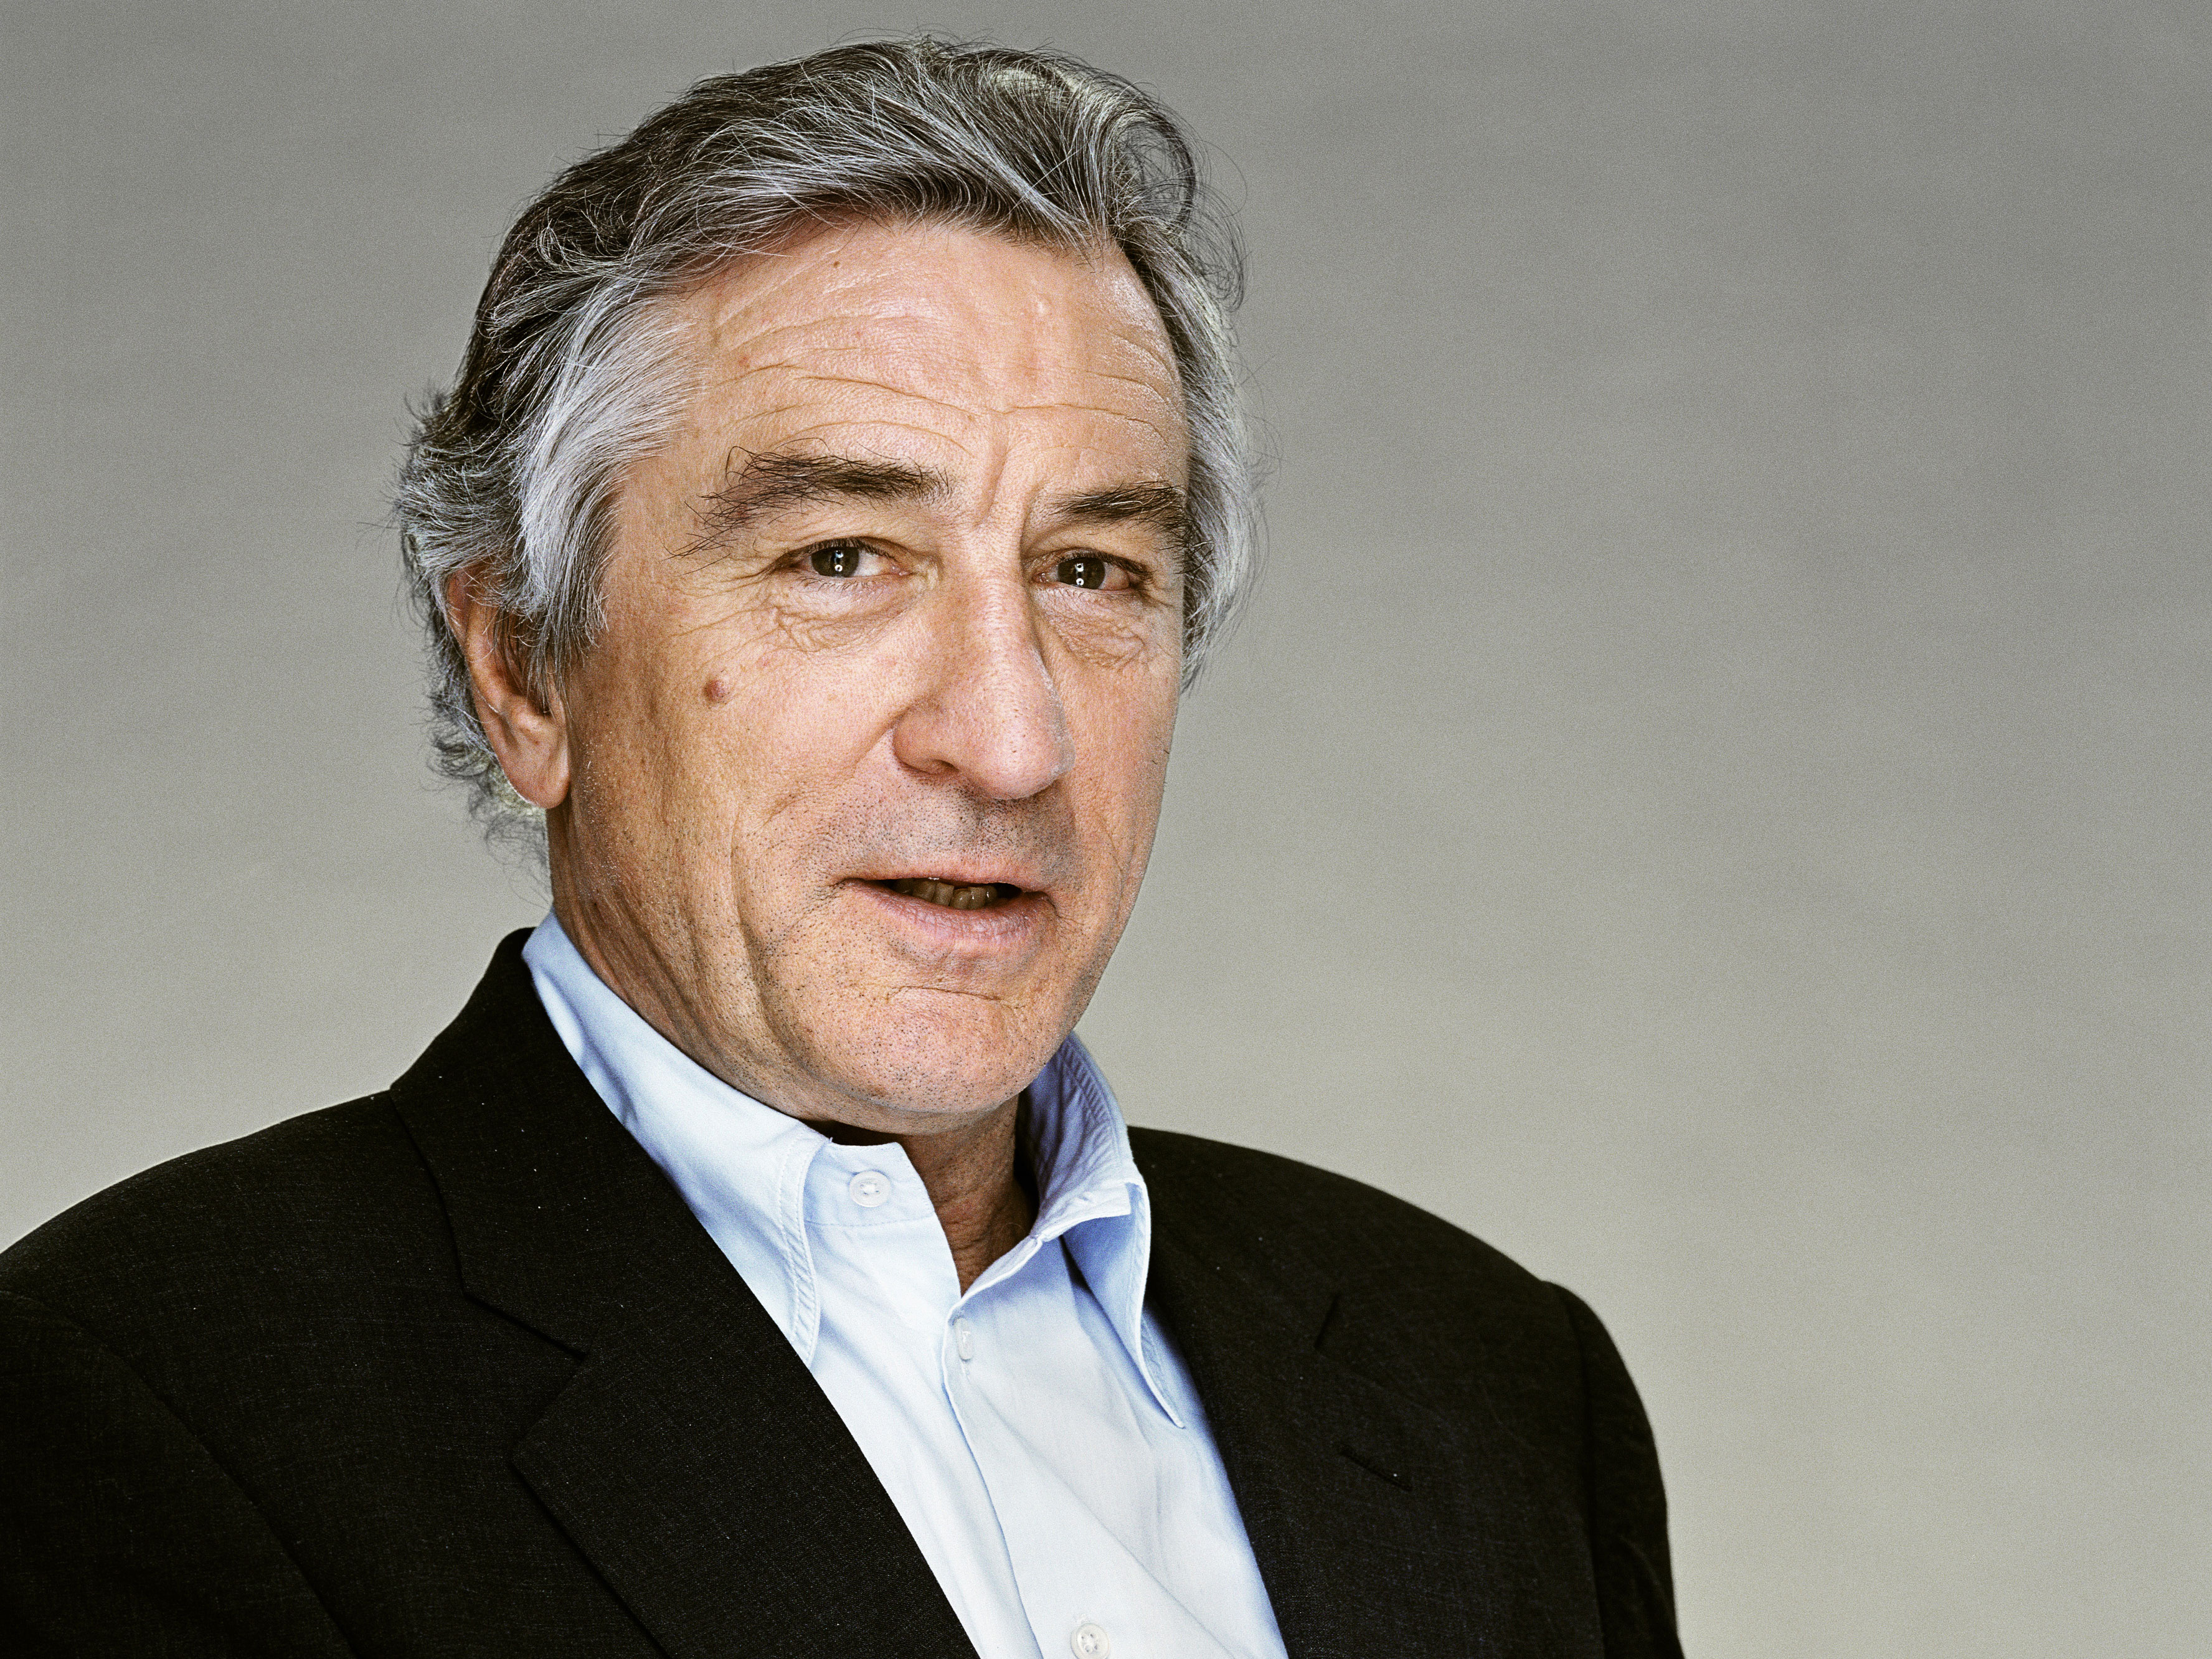 Robert De Niro, HBO and Entrepreneur Steve Kalafer To Be Honored At The Actors Fund Gala